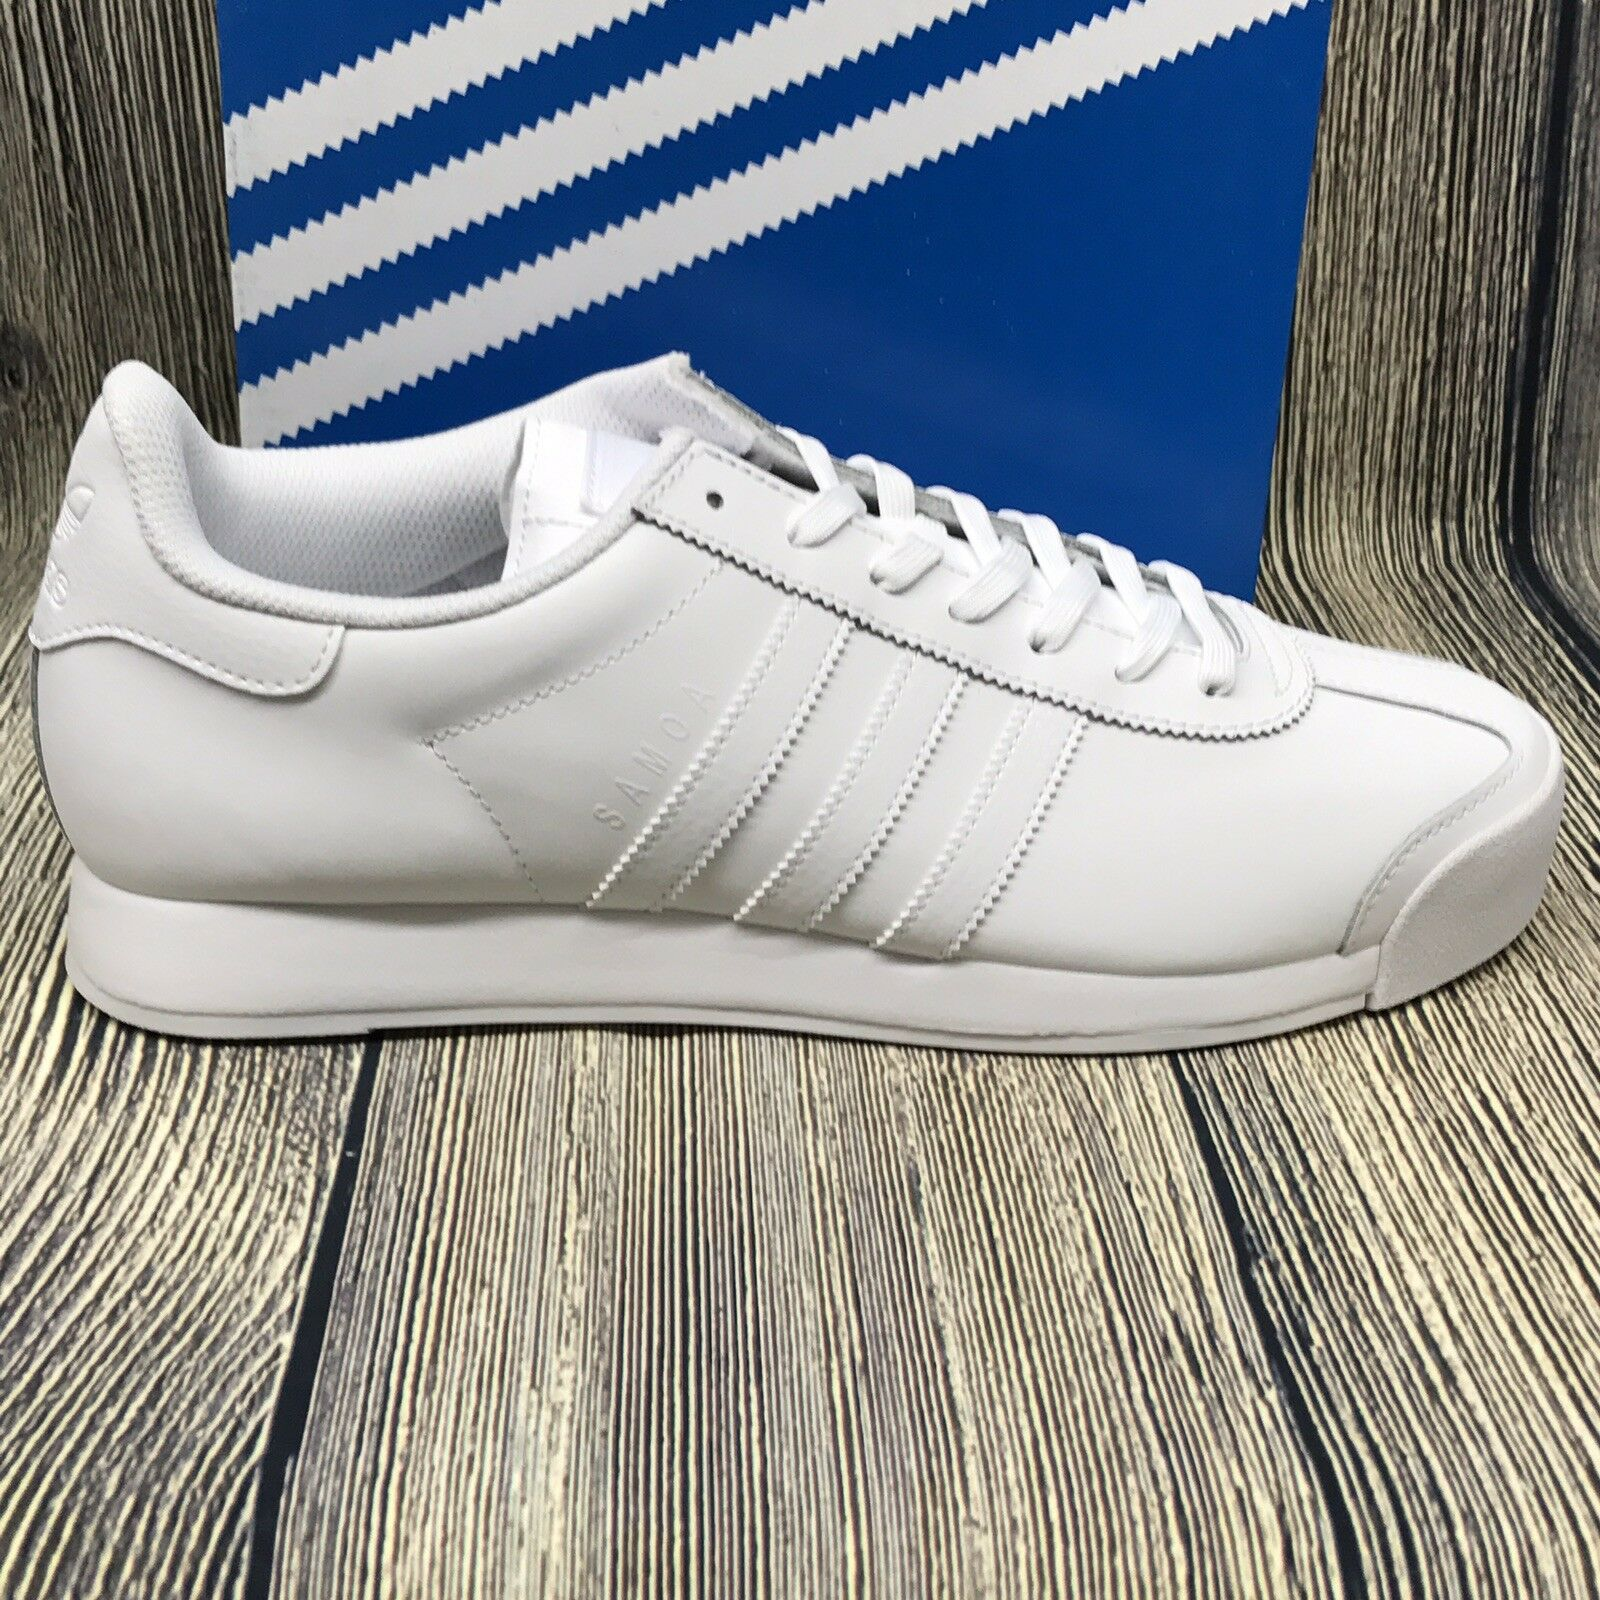 Adidas Originals Mens shoes   Samoa Fashion Sneakers, White  Grey Size 11.5